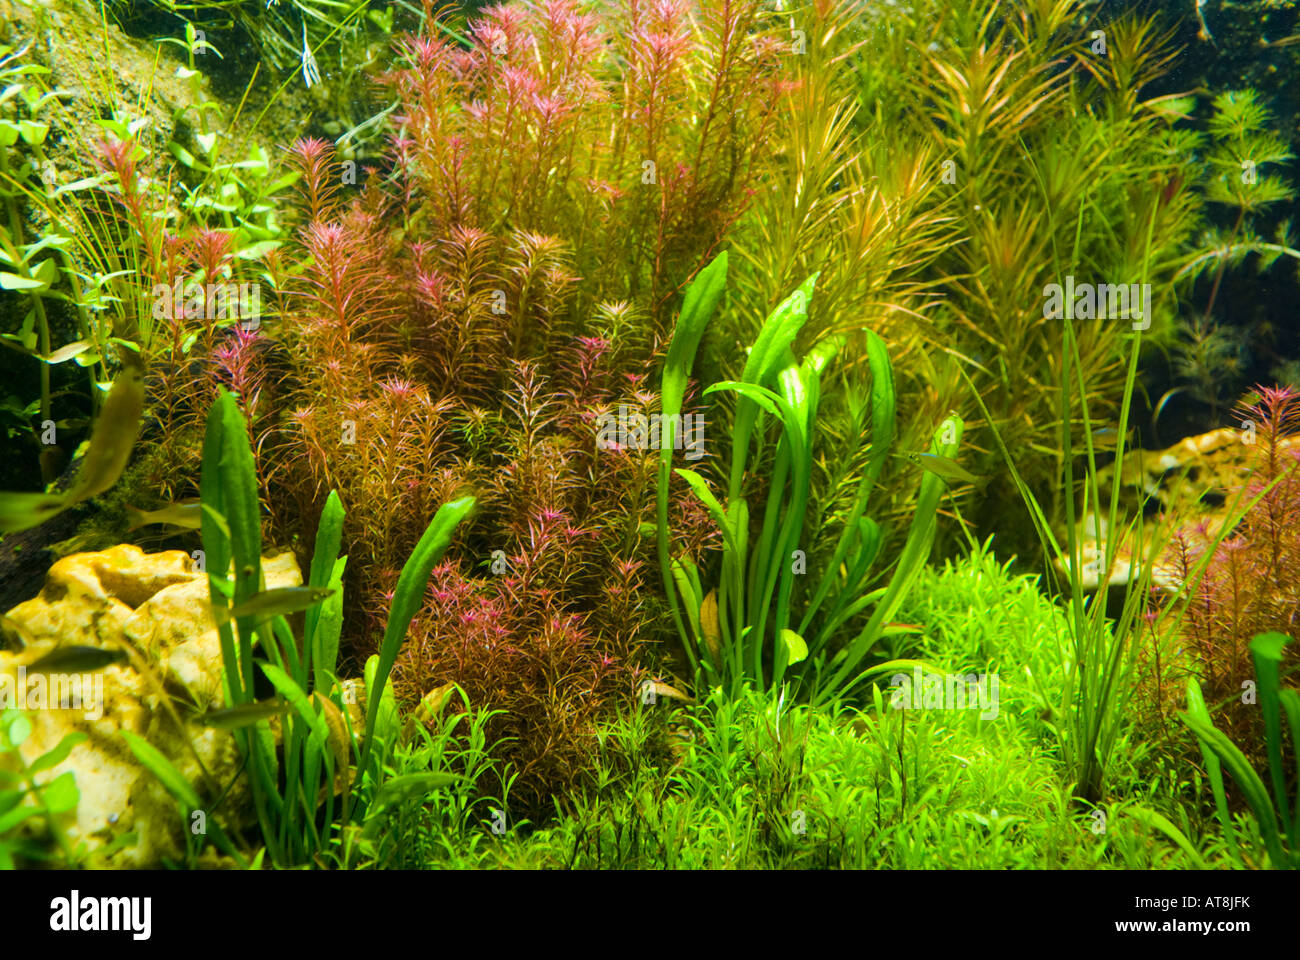 Background Of Freshwater Aquarium Plants Stock Photo, Royalty Free ...